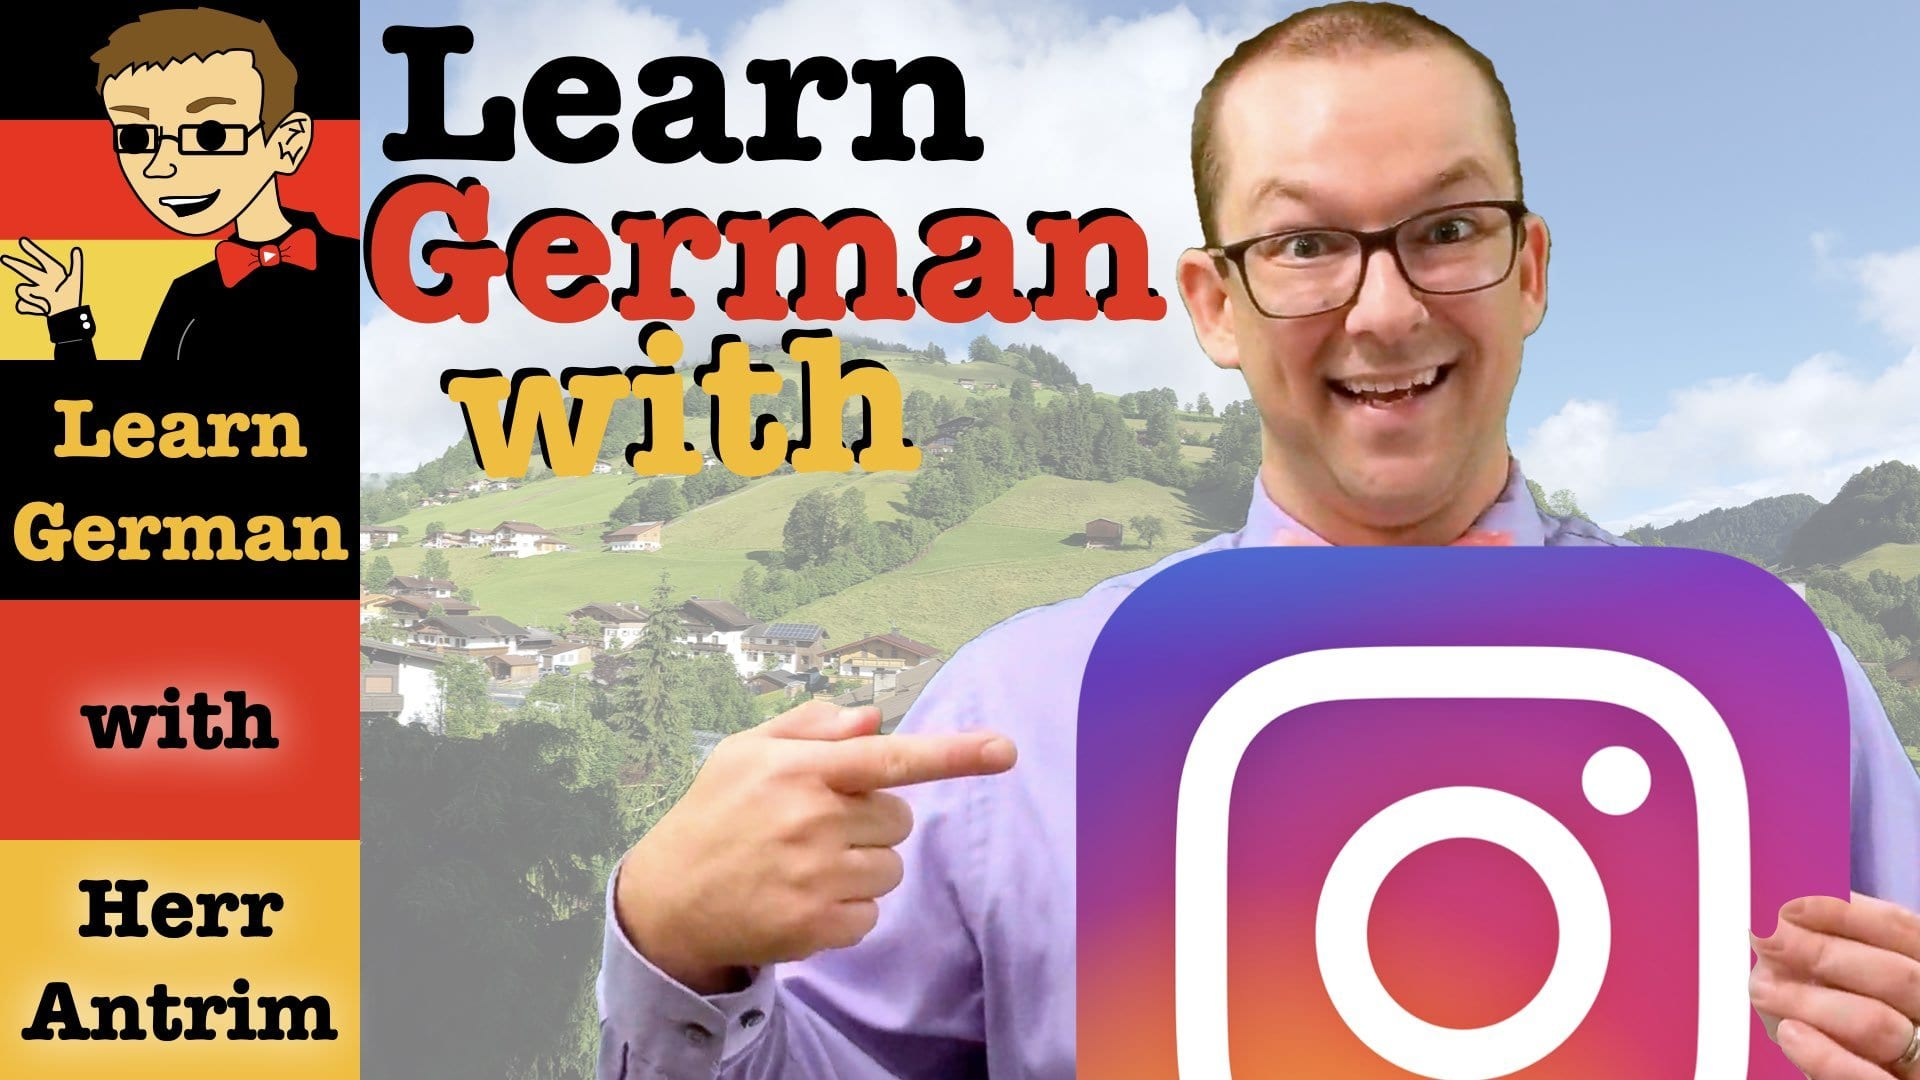 How to Learn German on Instagram